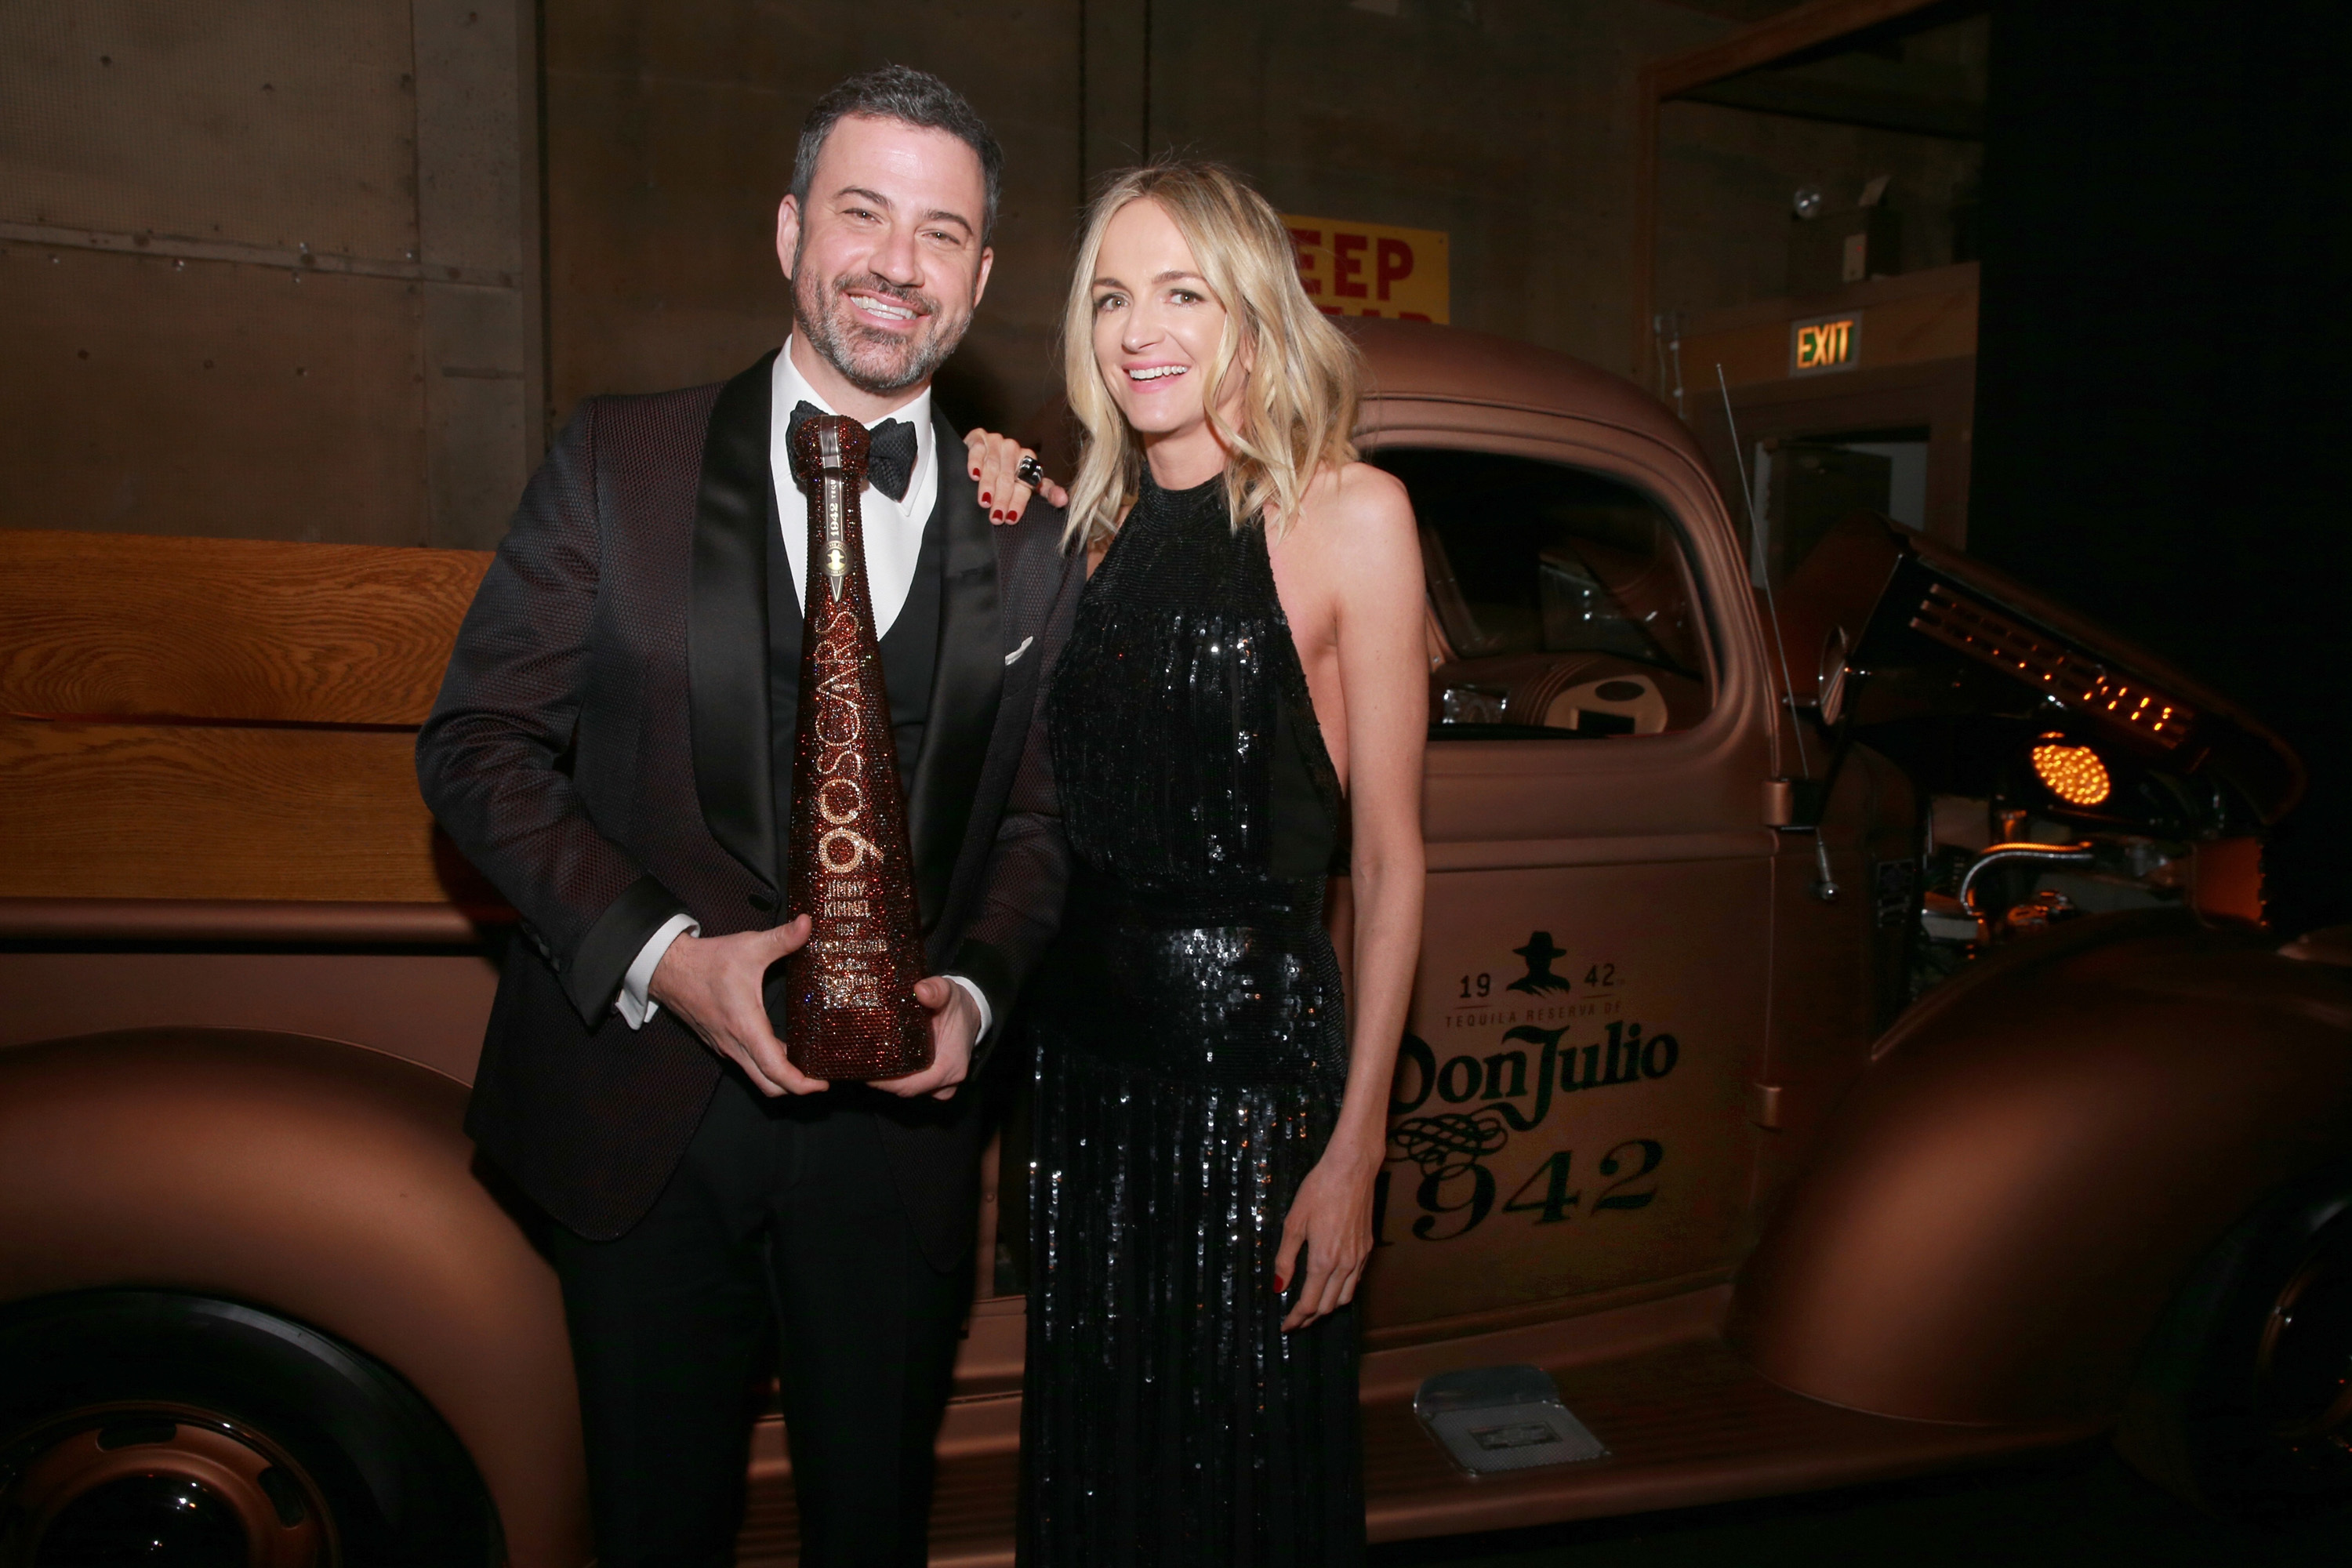 Jimmy Kimmel and wife Molly McNearney attend his Academy Awards afterparty with Don Julio 1942 Magnum at The Lot in West Hollywood on March 4, 2018.